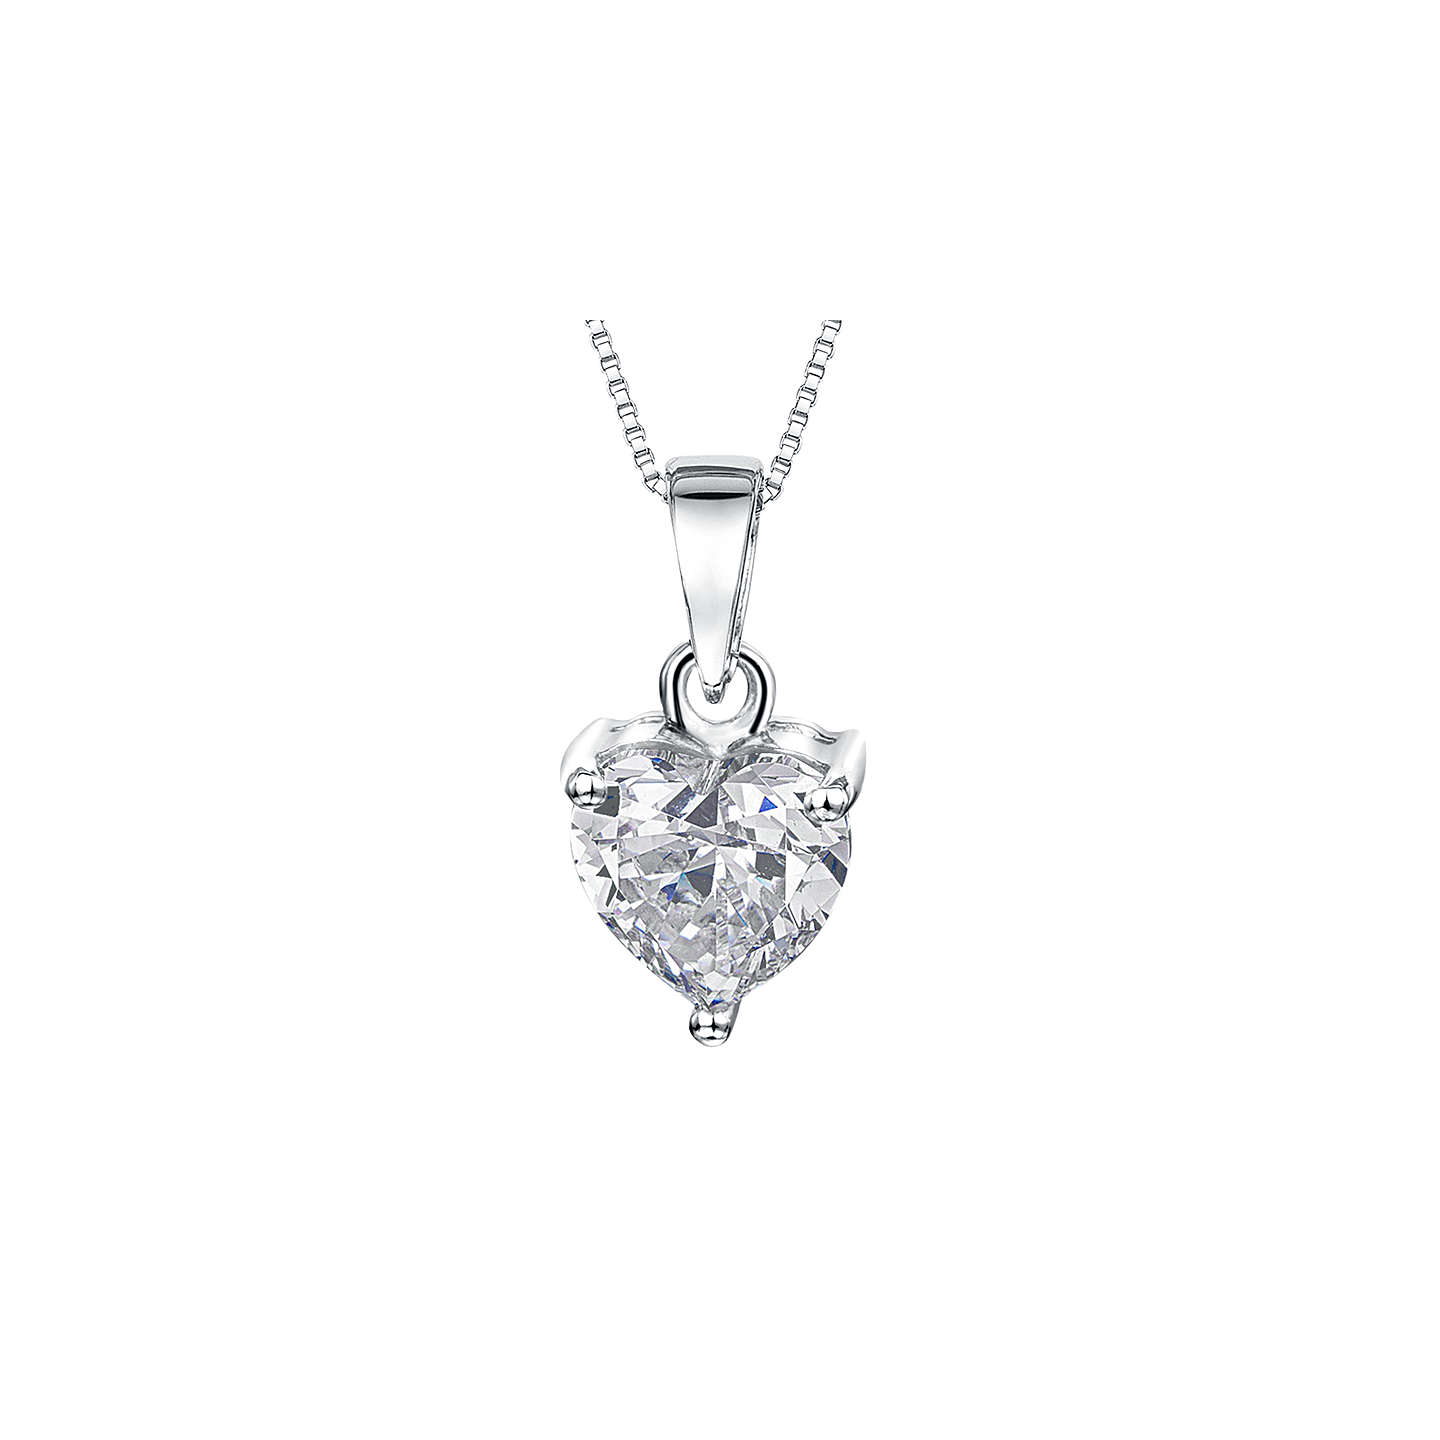 Jools by jenny brown small heart cubic zirconia pendant necklace buyjools by jenny brown small heart cubic zirconia pendant necklace silver online at johnlewis aloadofball Images